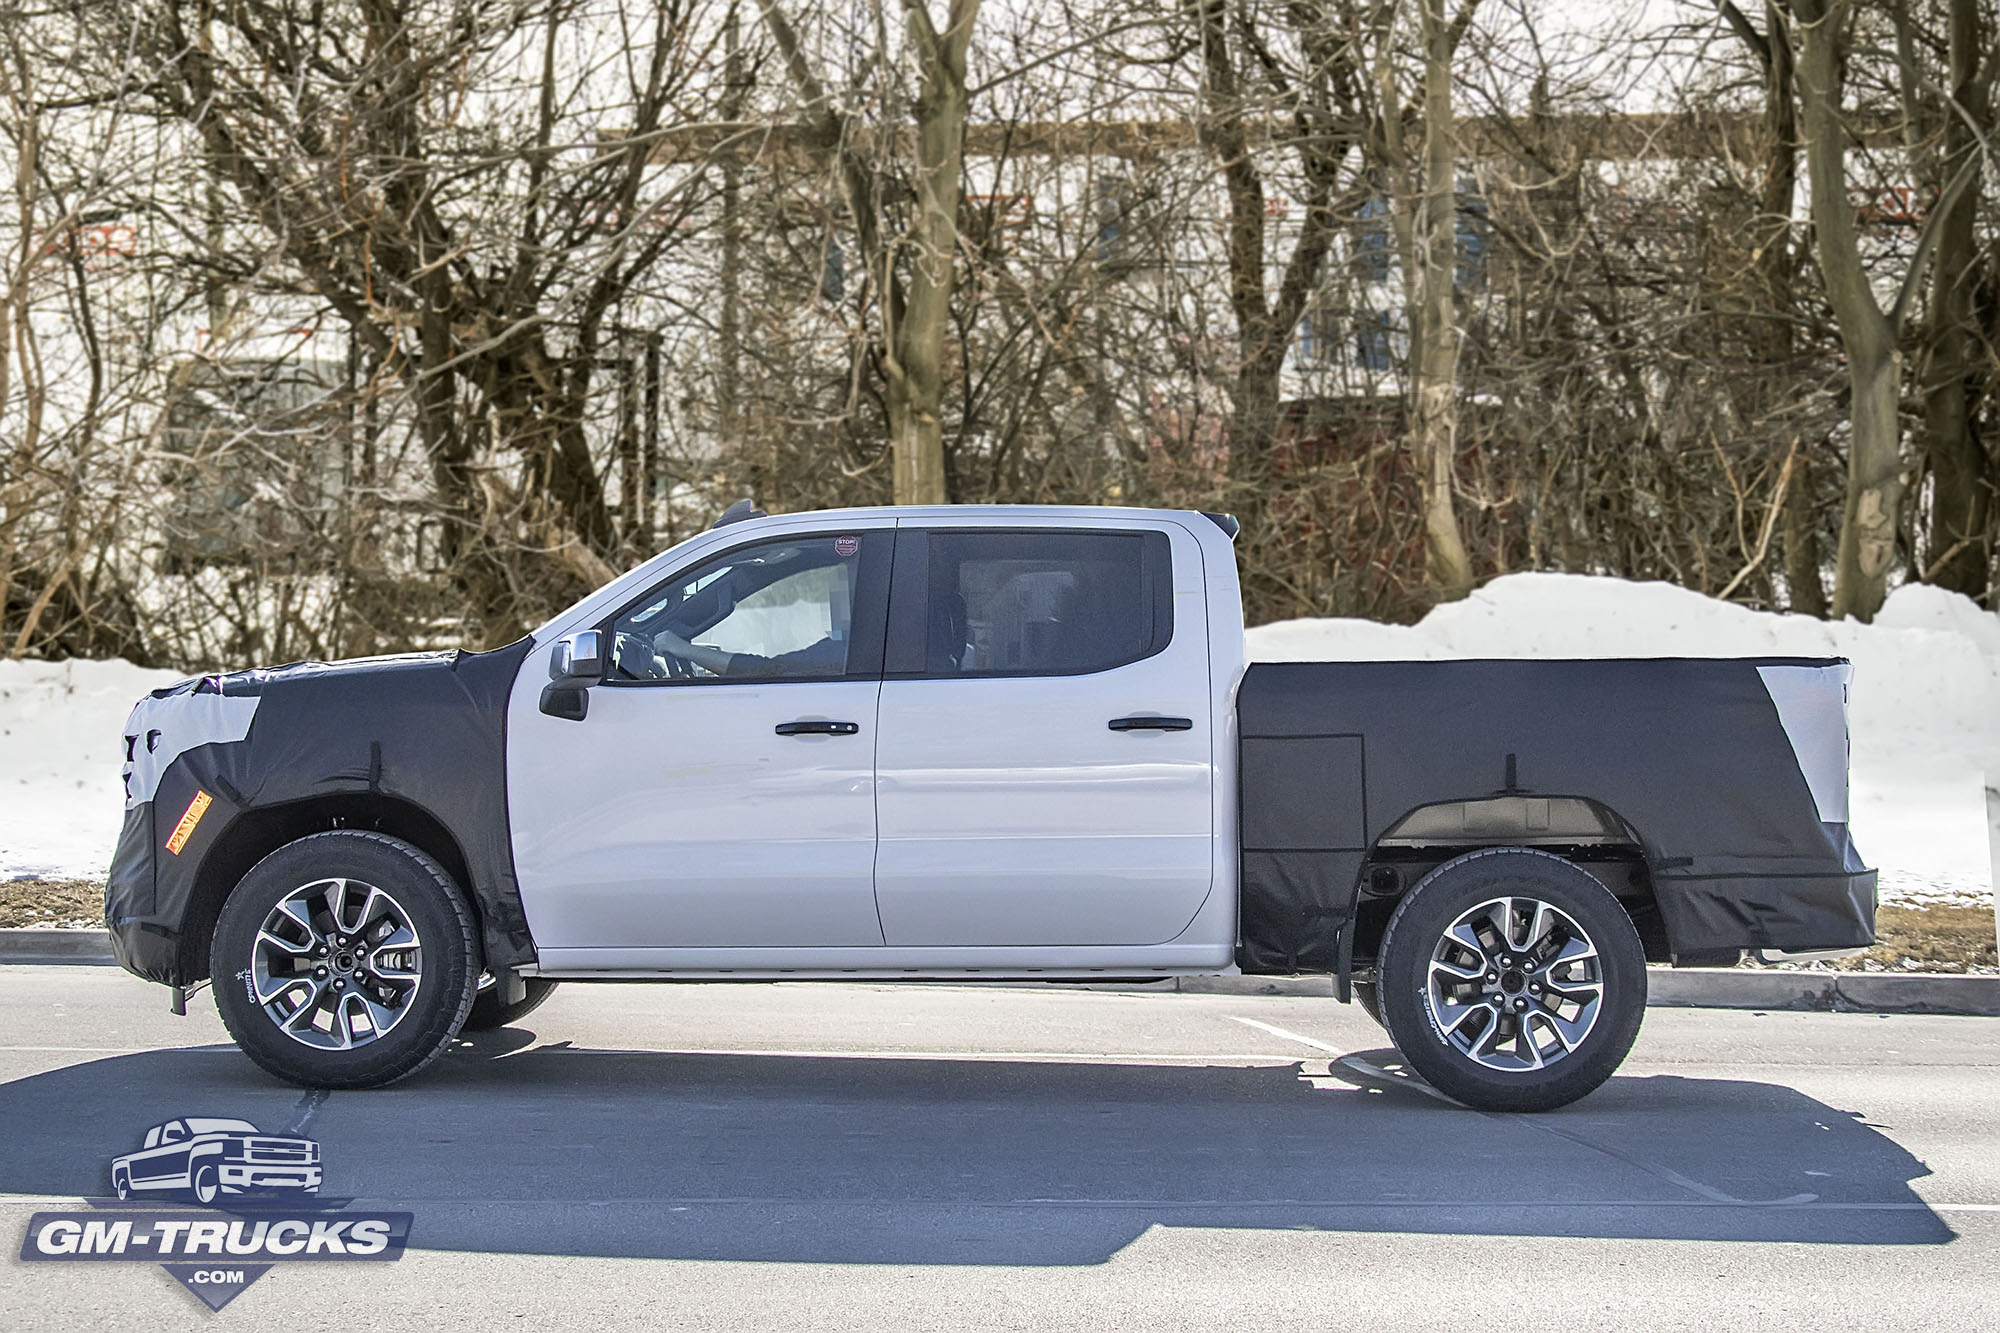 [Spy Shots] Our Best Look Yet At The 2022 Chevy Silverado